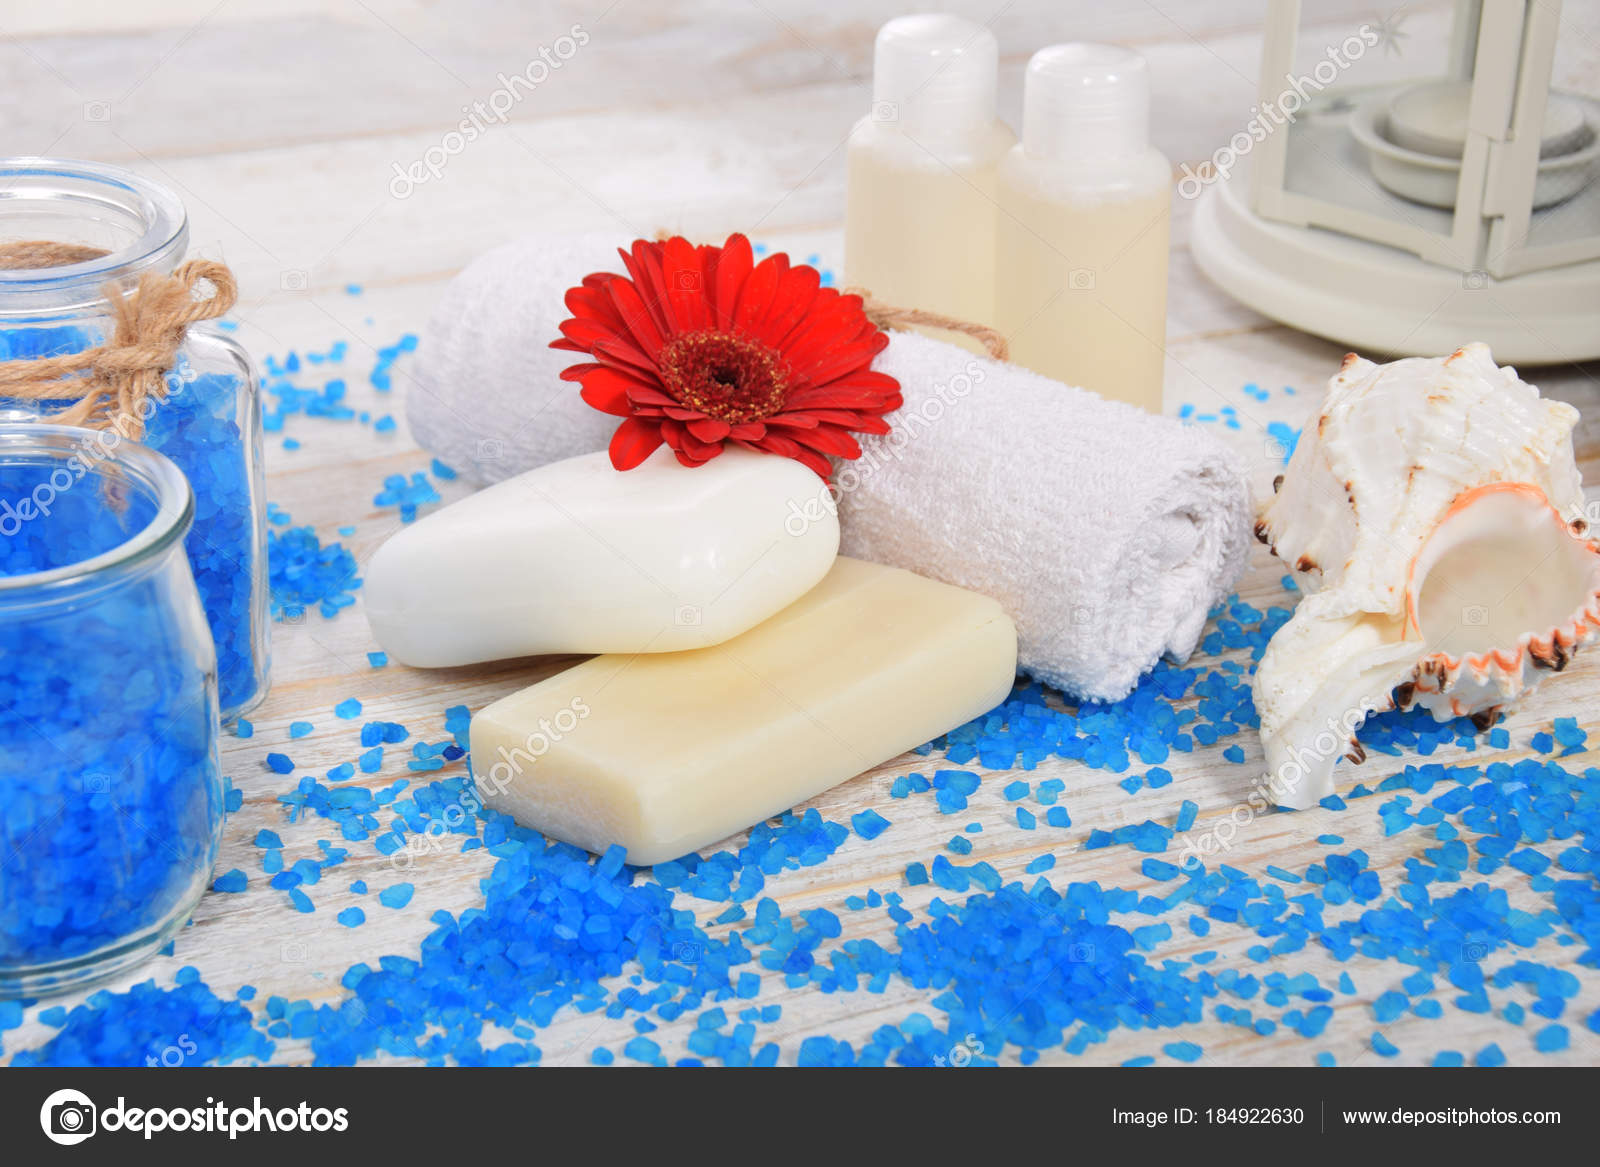 Red gerber flower with sea salt blue for bath and mini shampoo a — Stock Photo